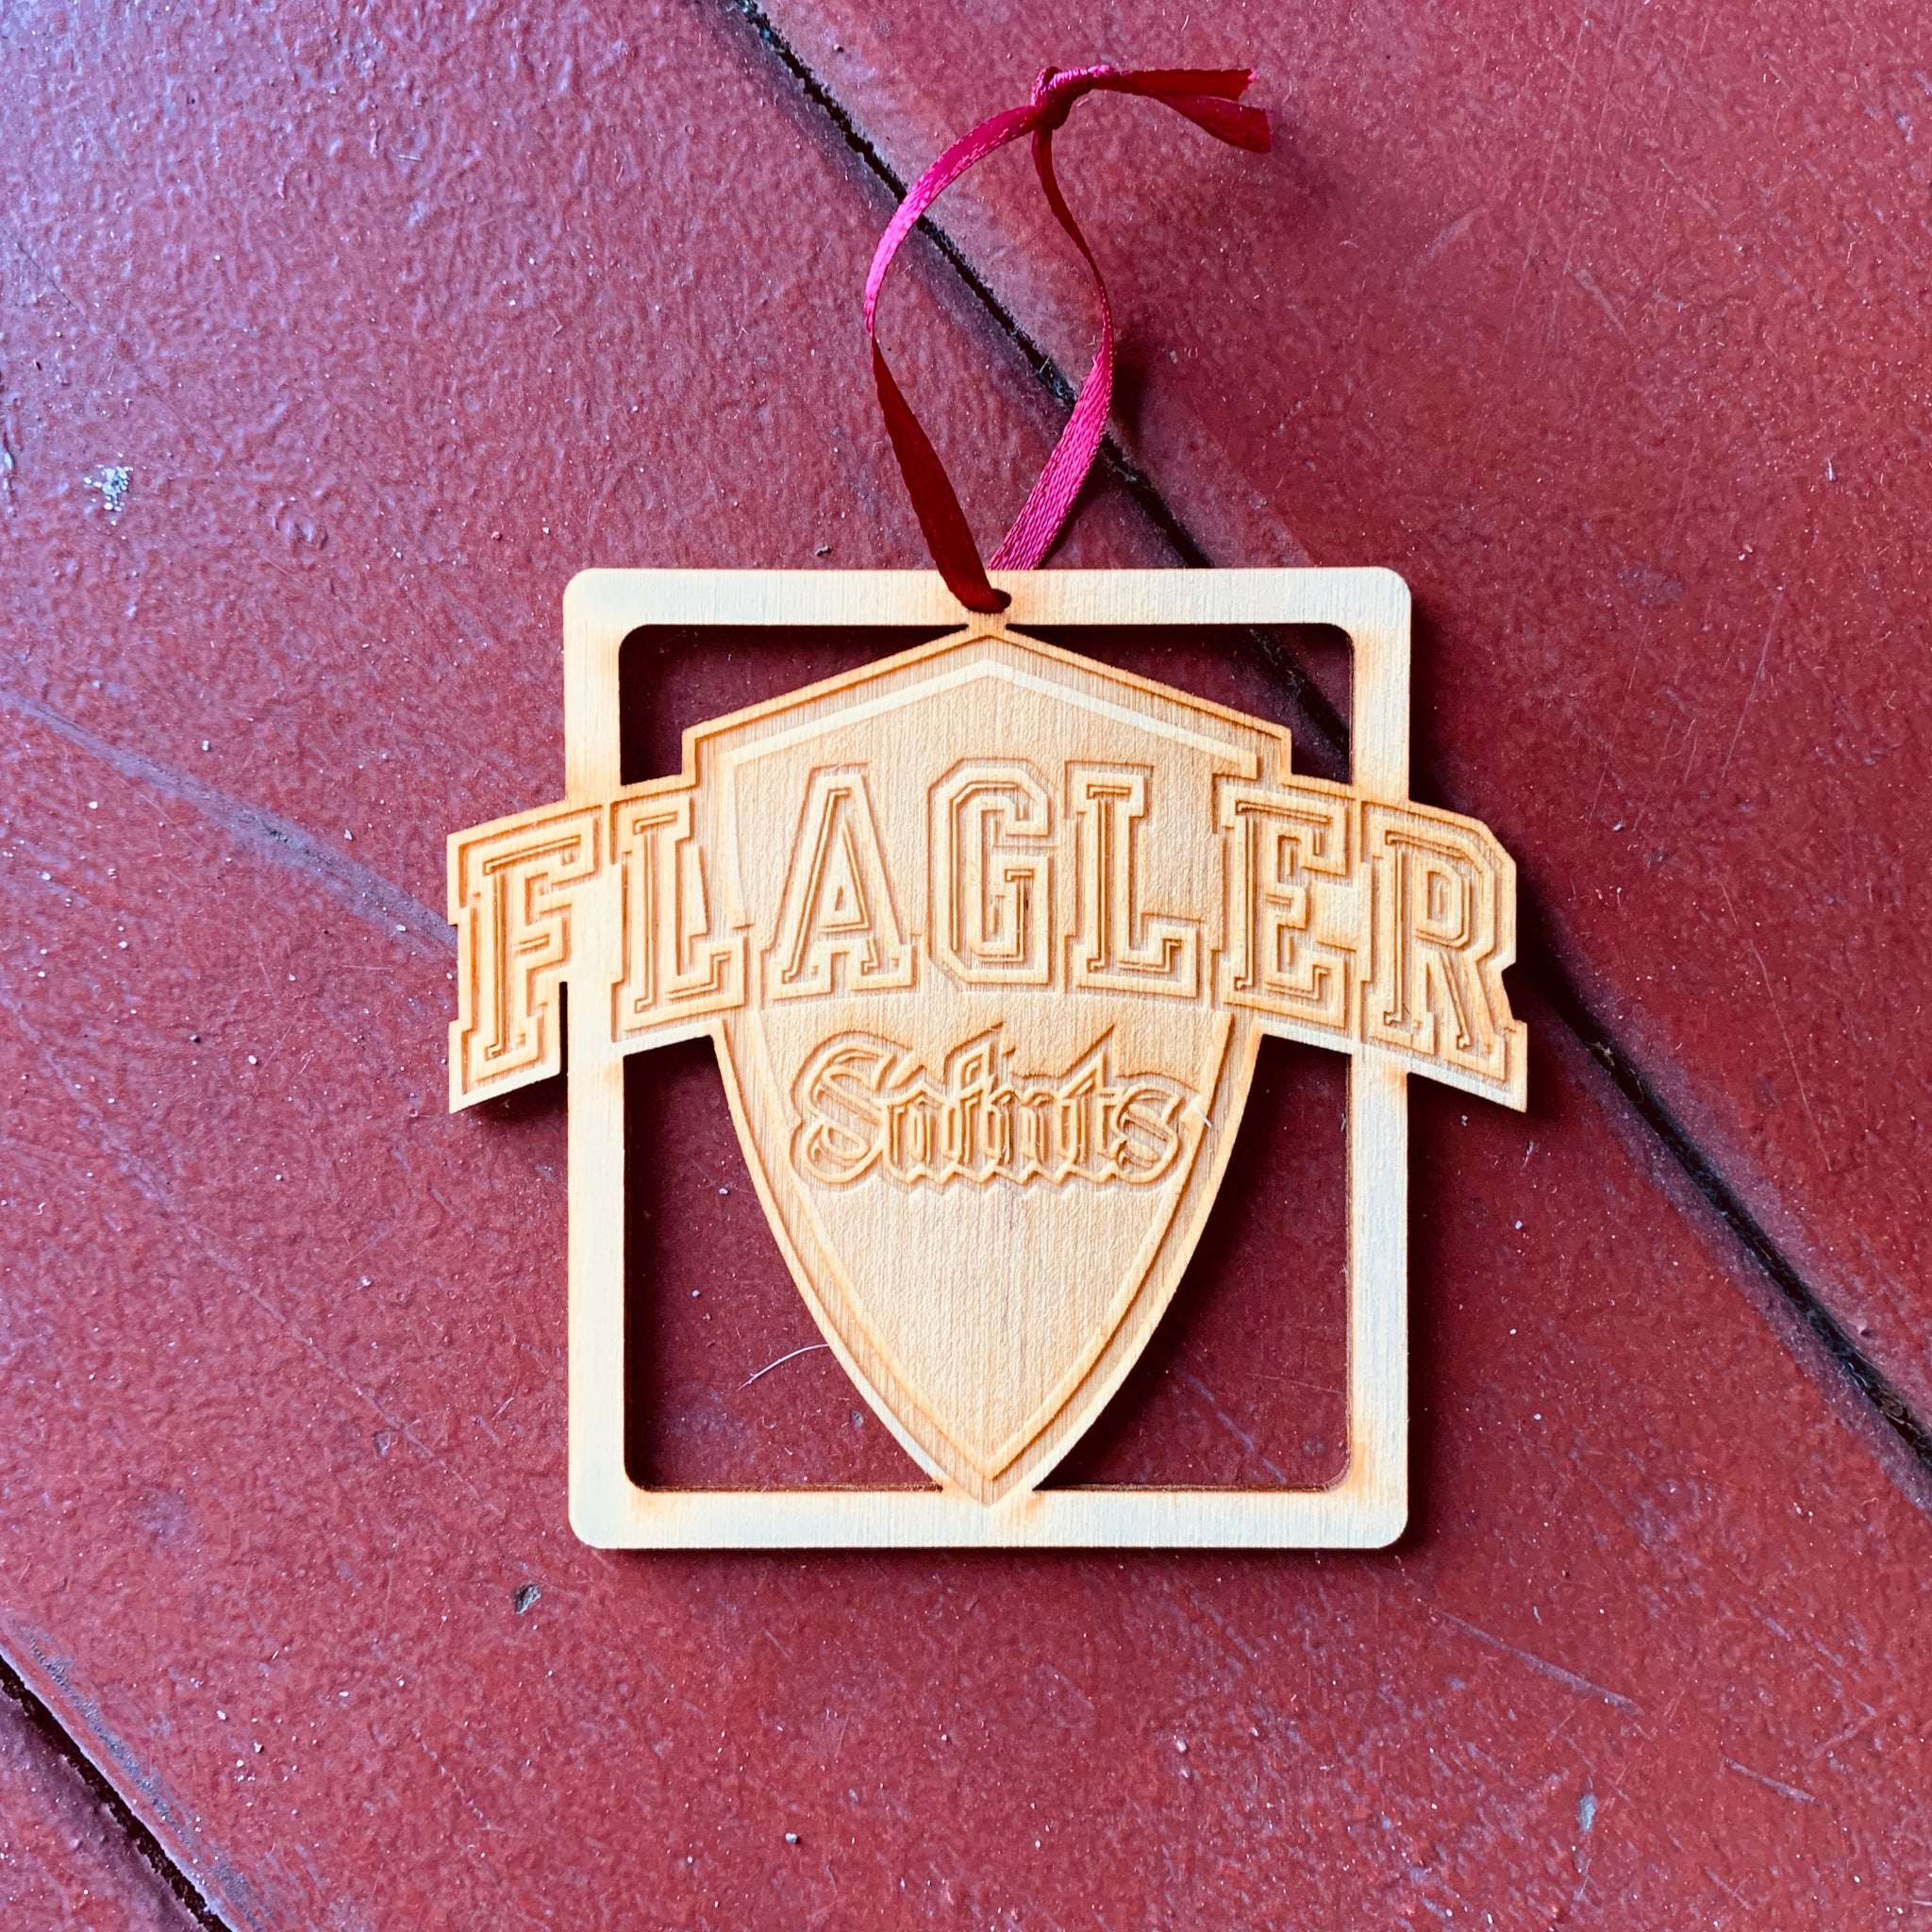 Flagler saints shield wooden ornament